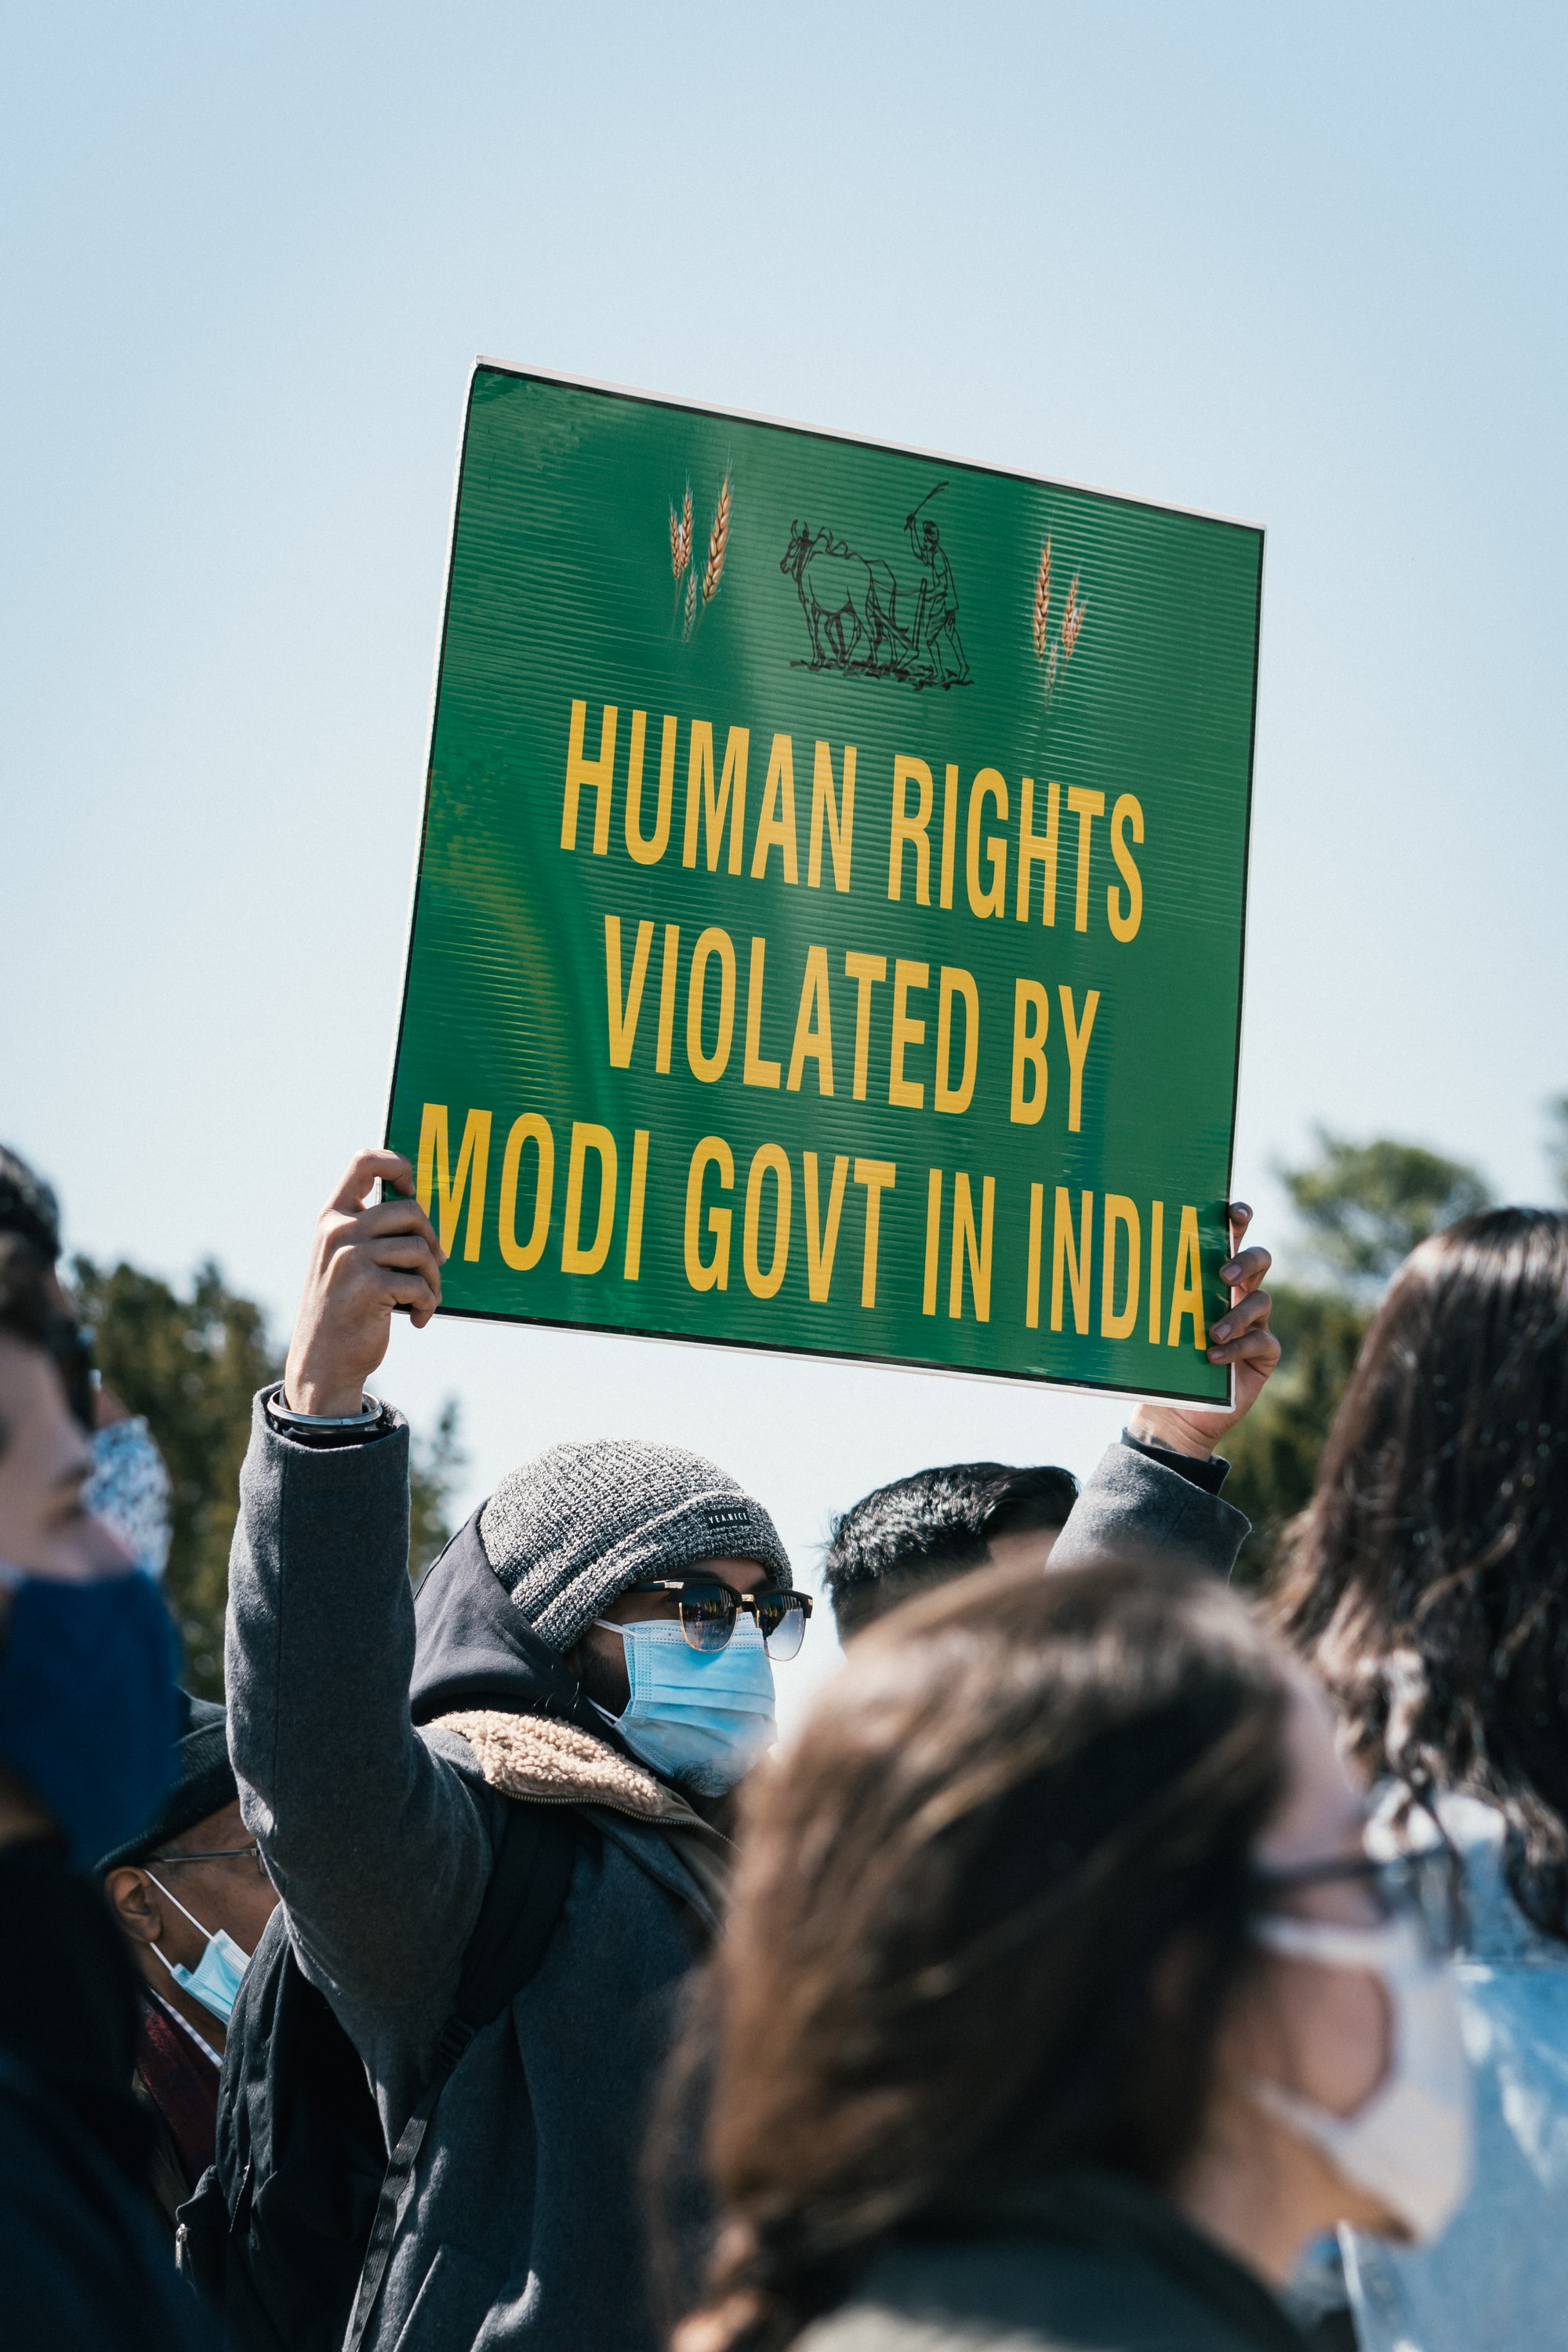 Human Rights Violated by Modi Govt in India